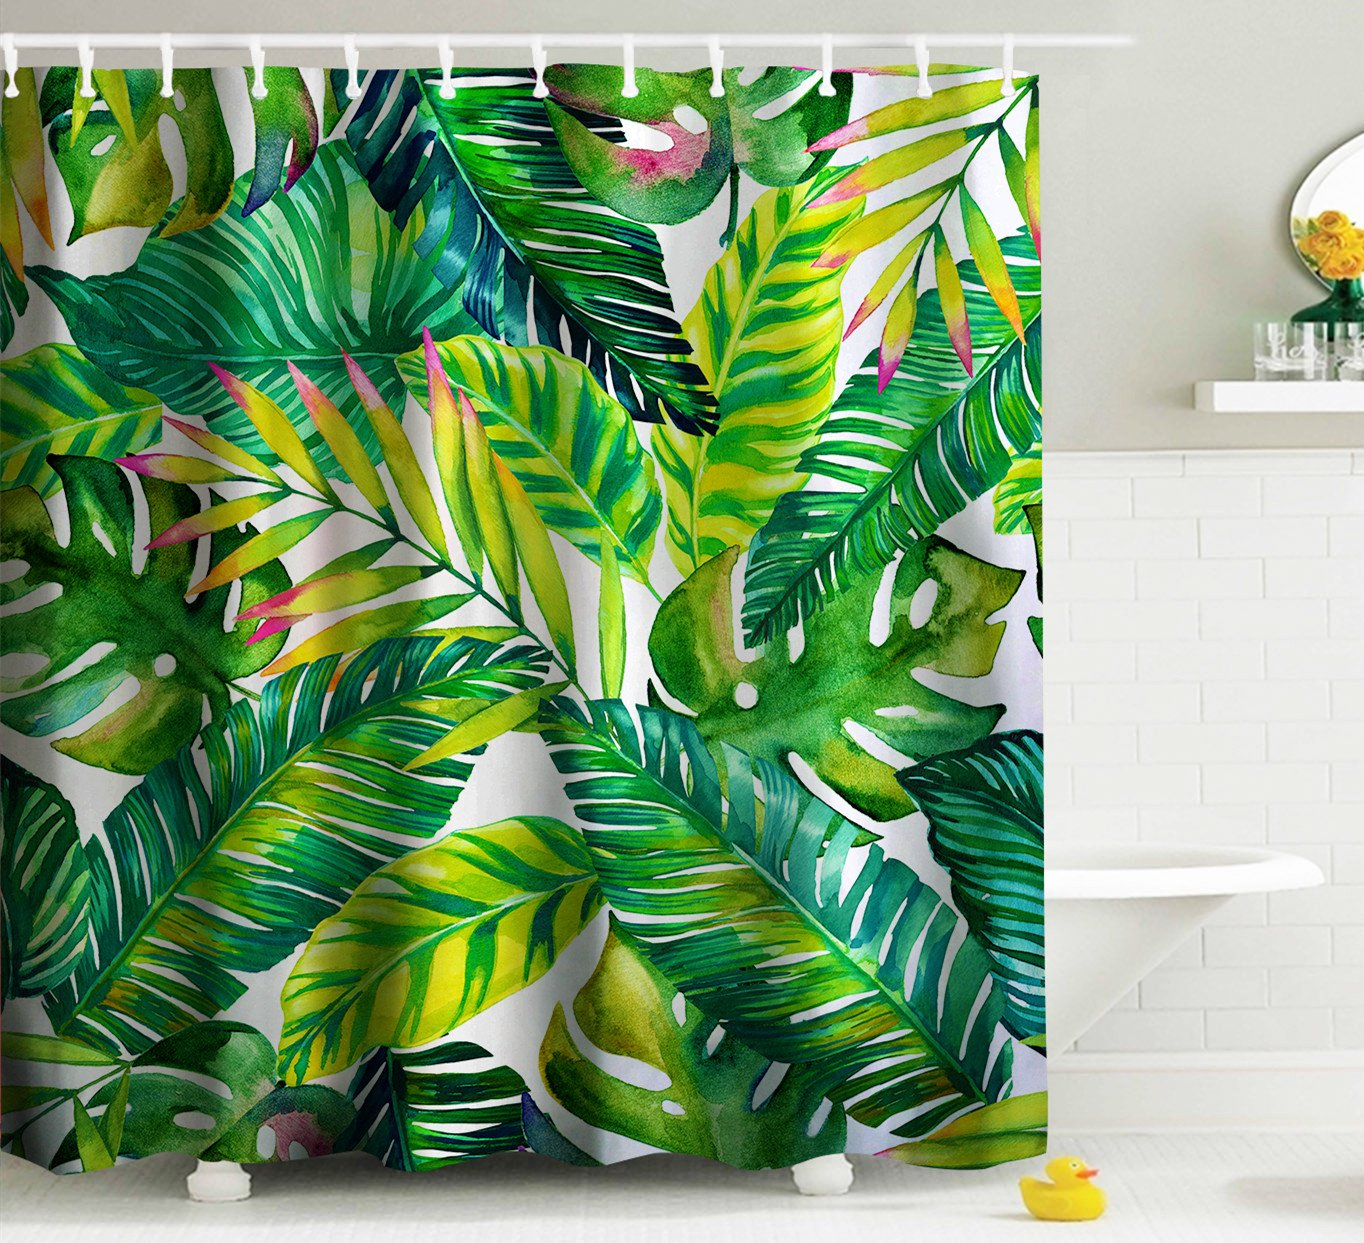 Goodbath Green Banana leaf Shower Curtain by, Tropical Palm Leaves ...